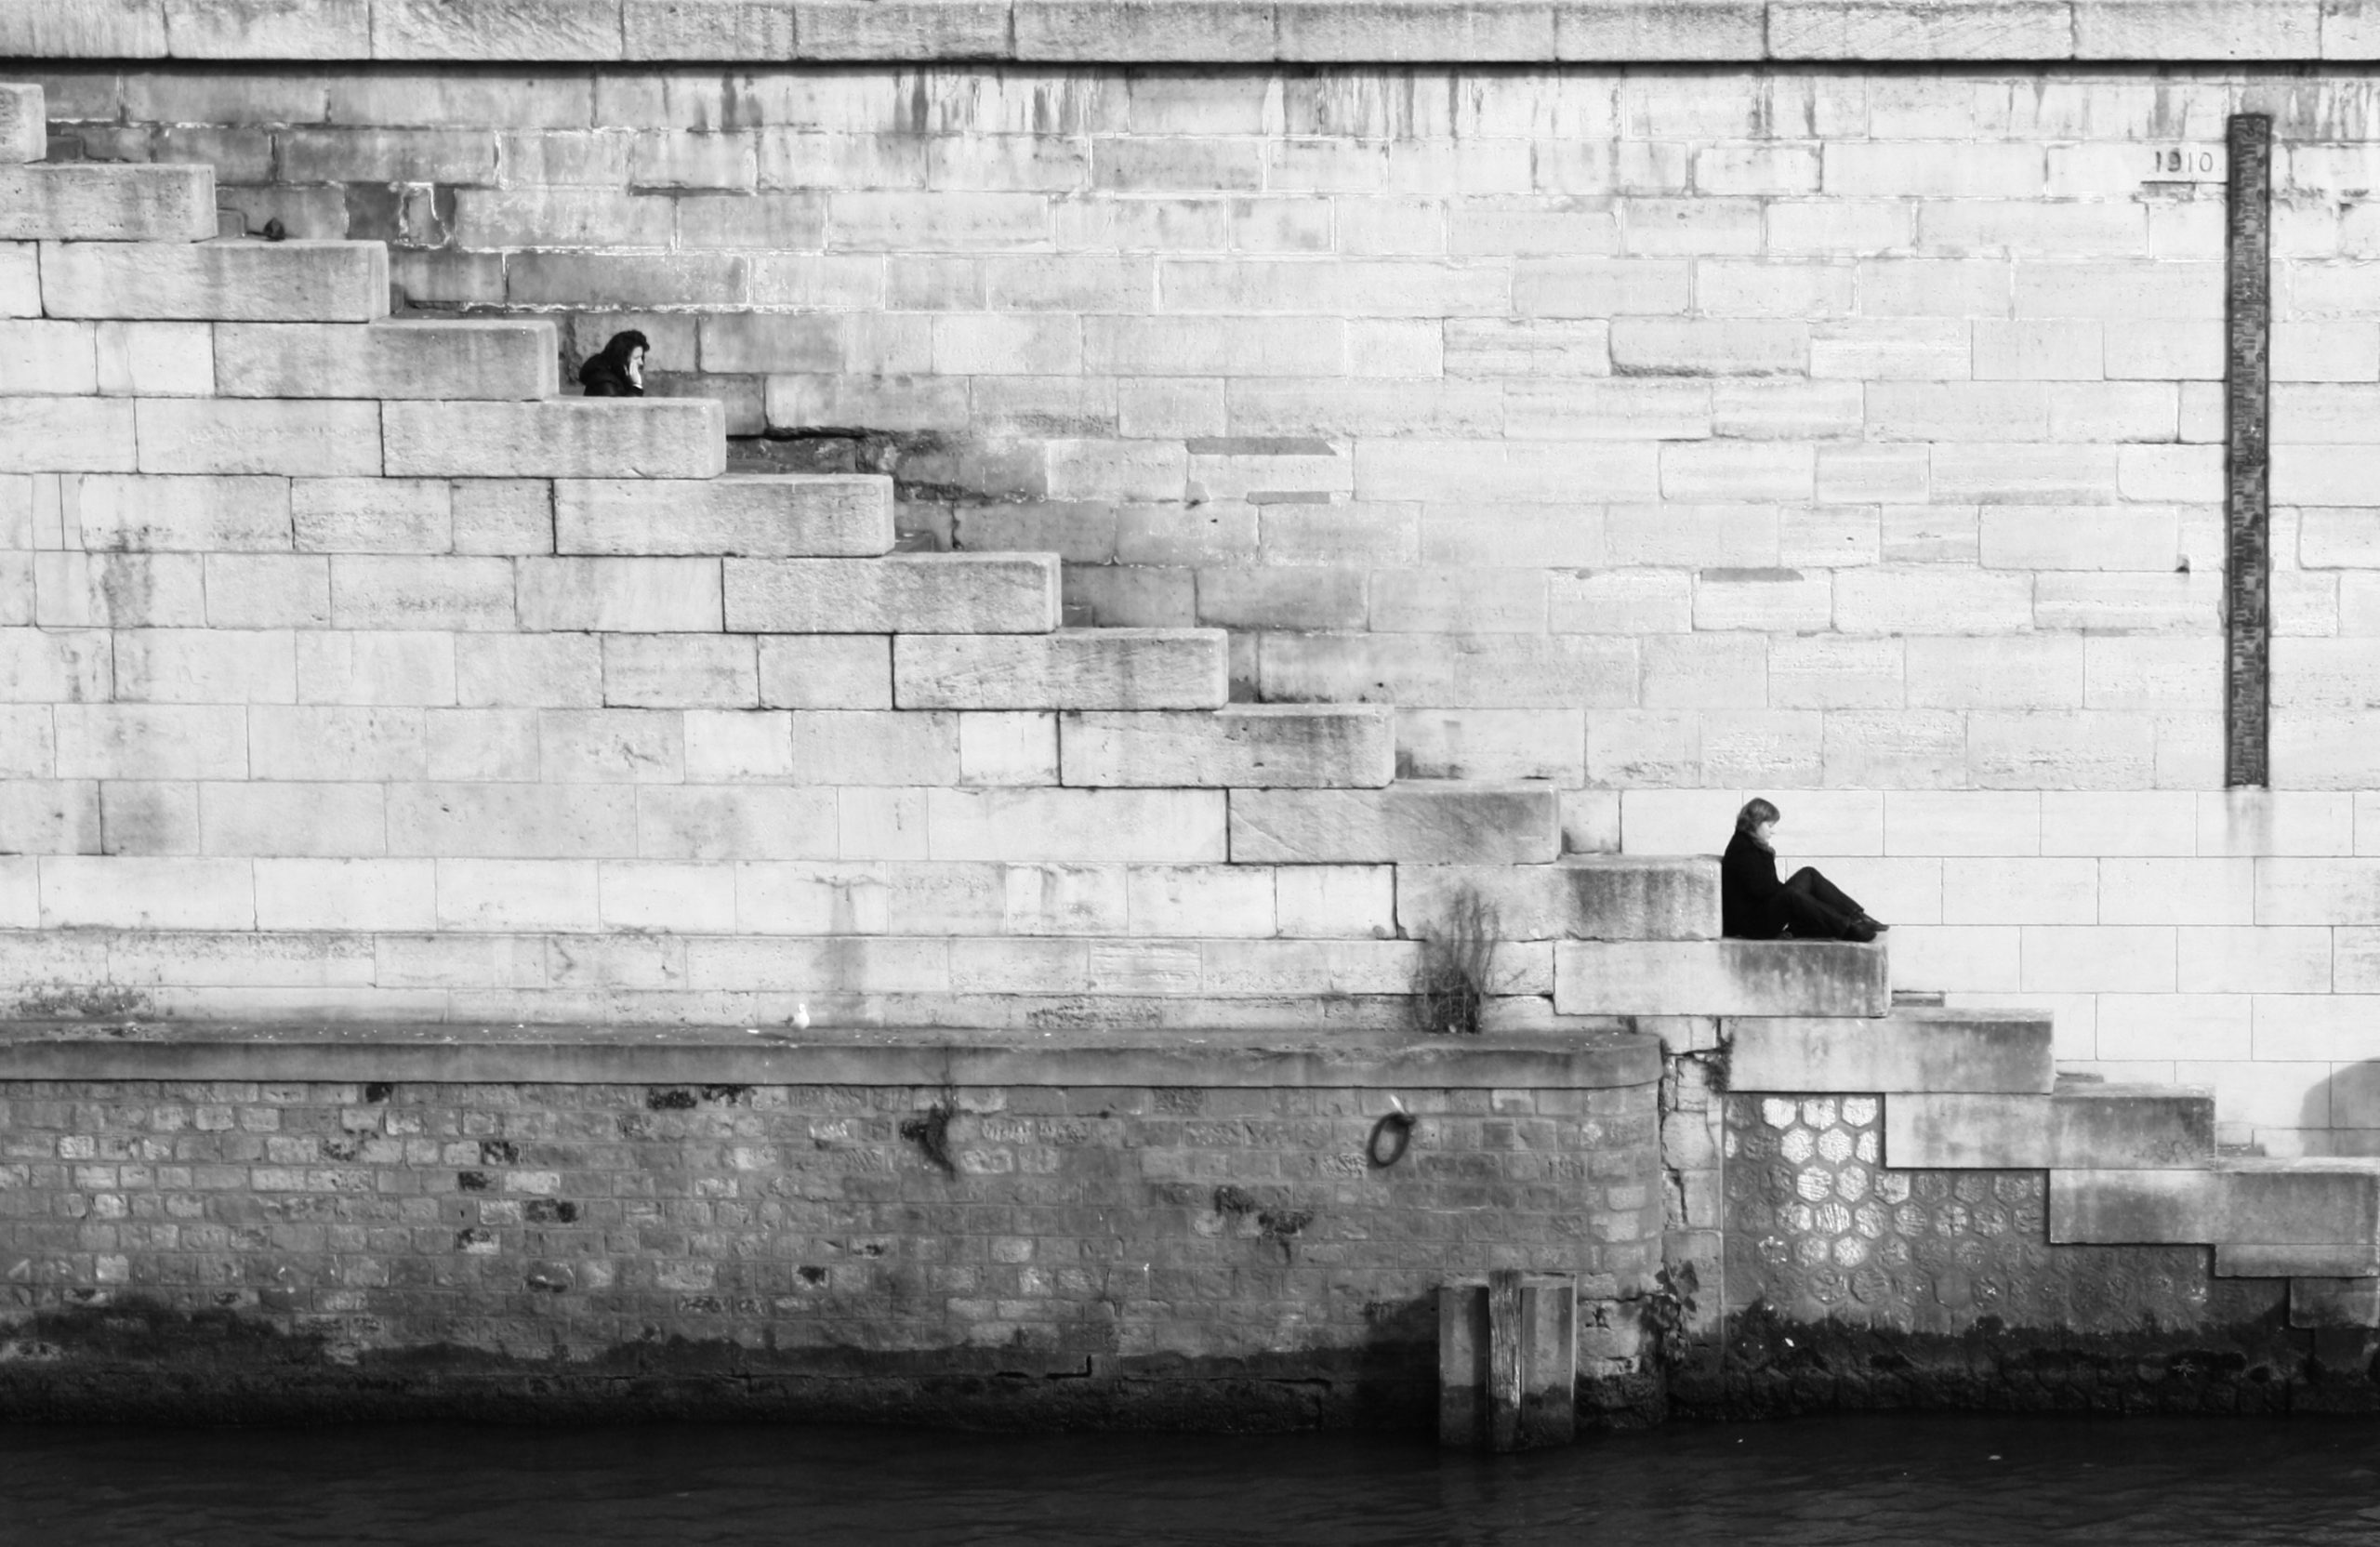 Landscape photograph of a woman sitting alone by a wall